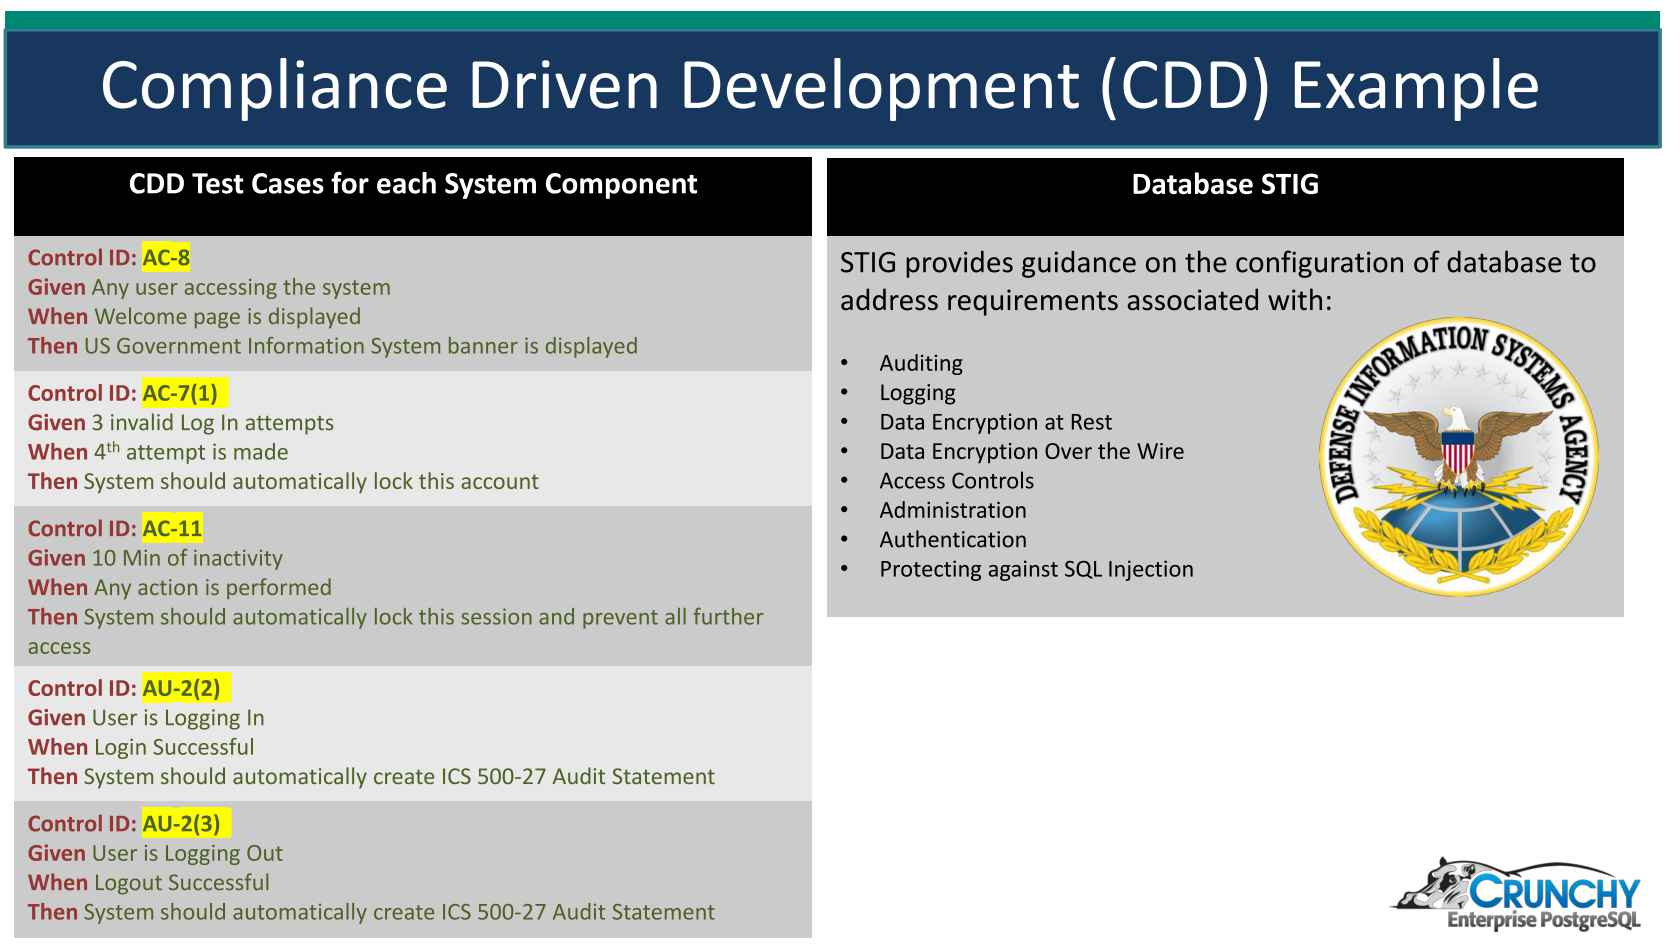 Introduction to Compliance Driven Development (CDD) and